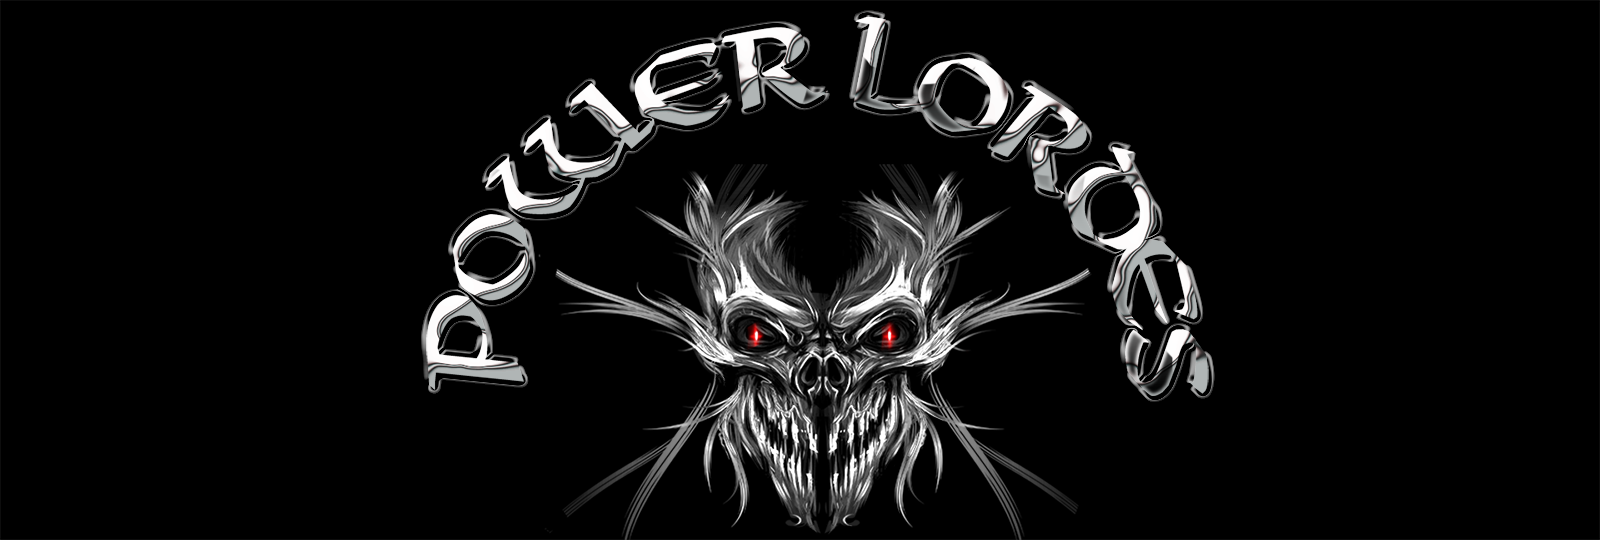 Power Lordes.com